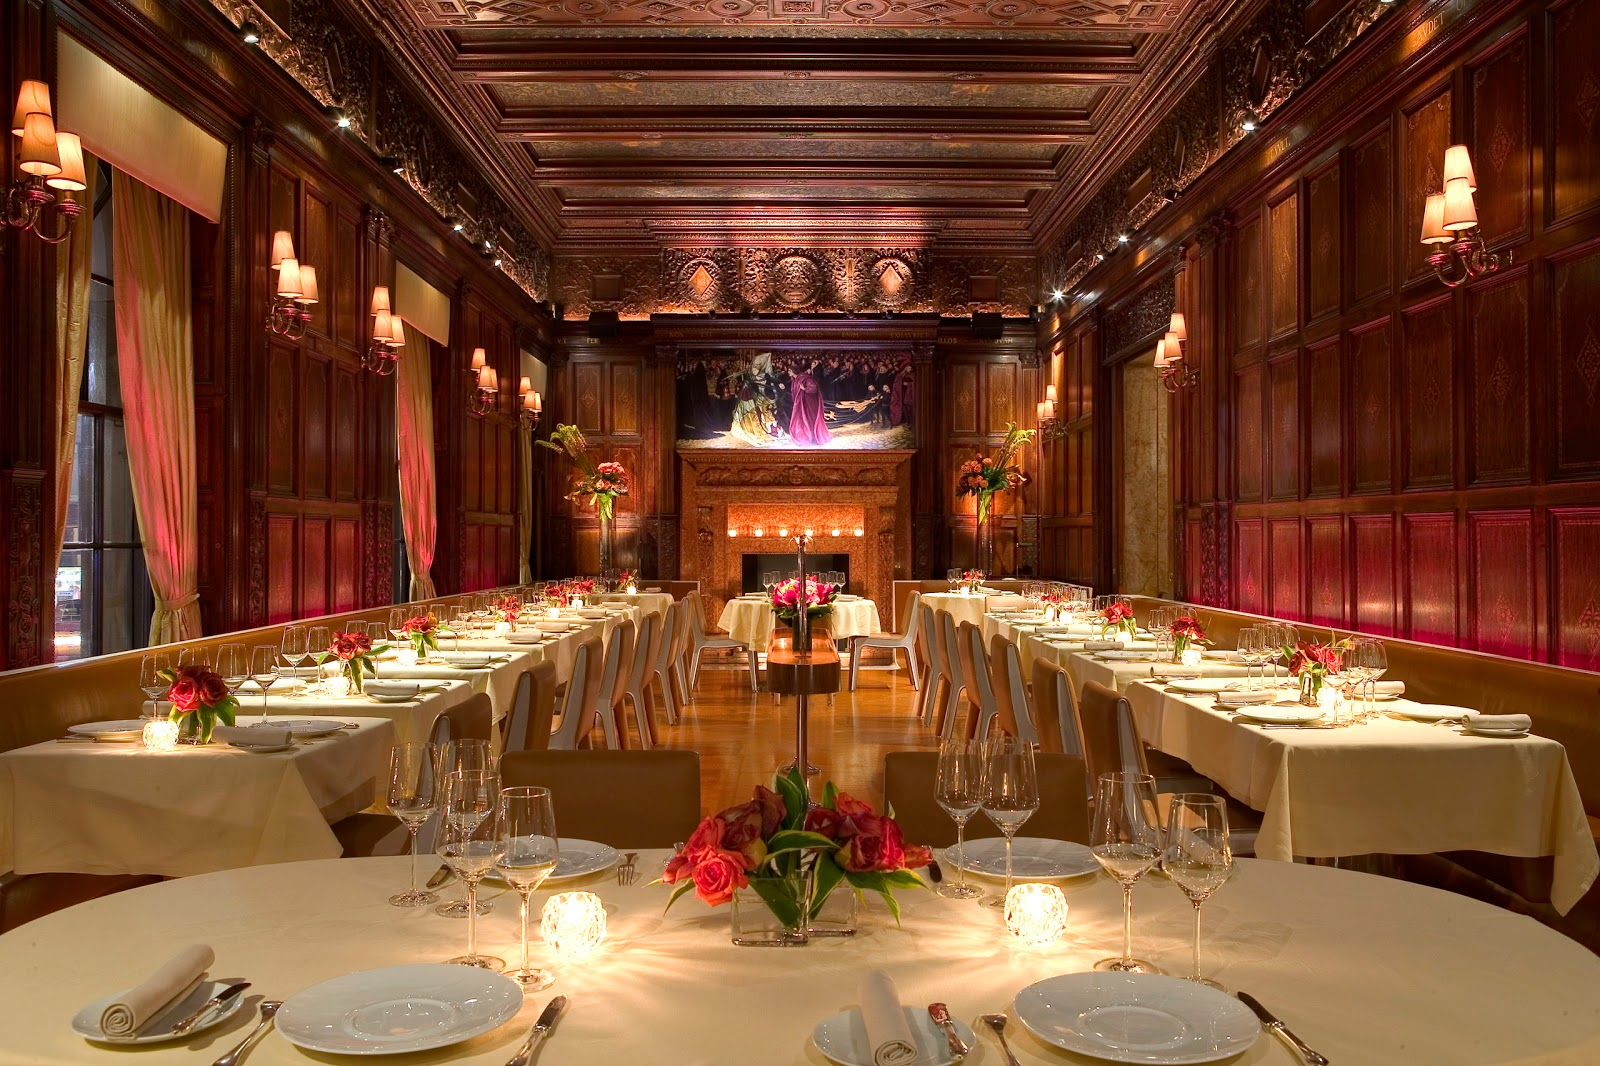 Top 10 Best Looking Restaurants In New York